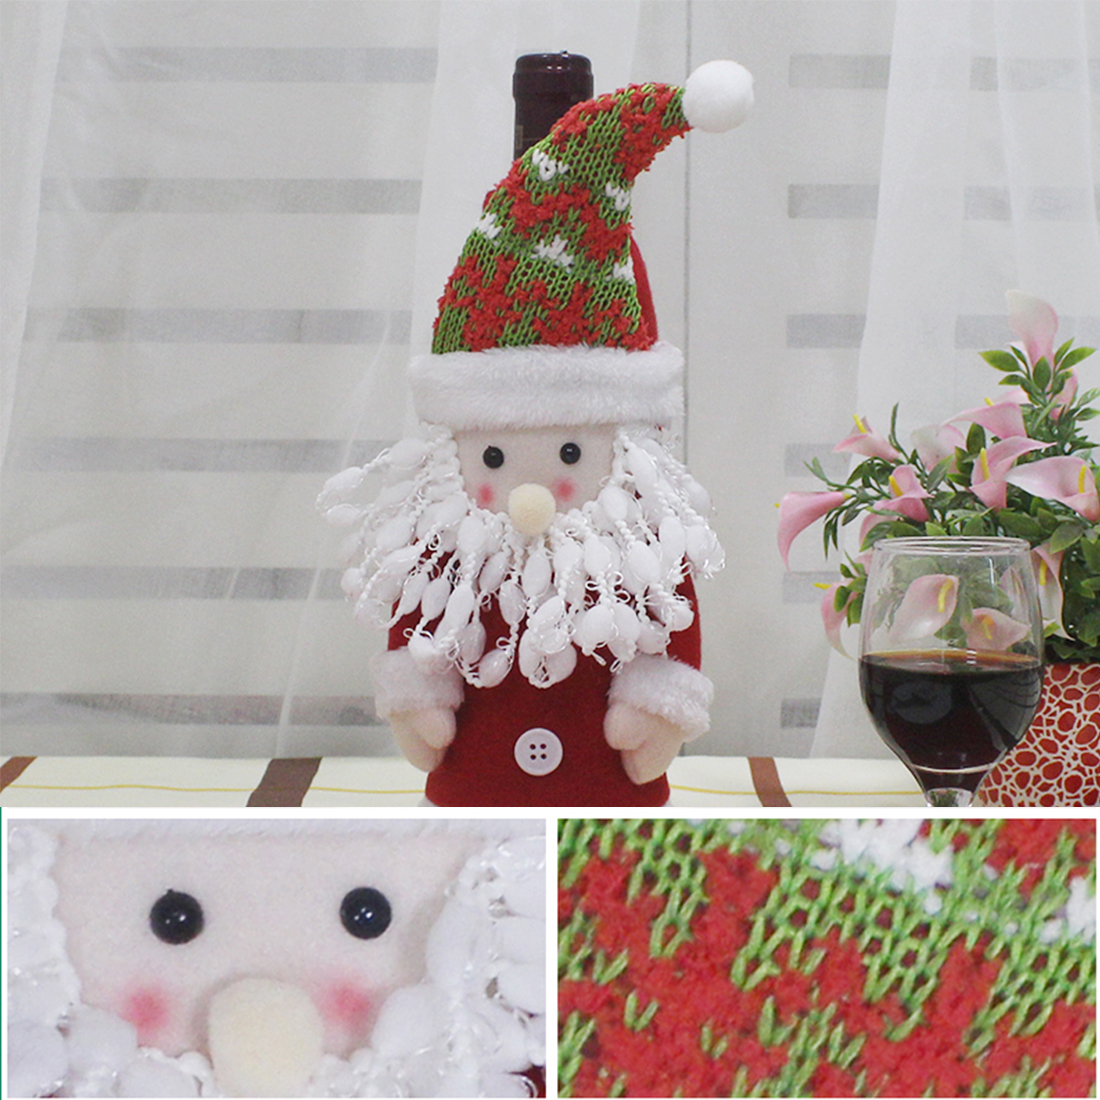 Gift Christmas Bottle Sets Santa Claus Snowman Wine Bottle Cover Holders Wedding Birthday Party Decoration Supplies